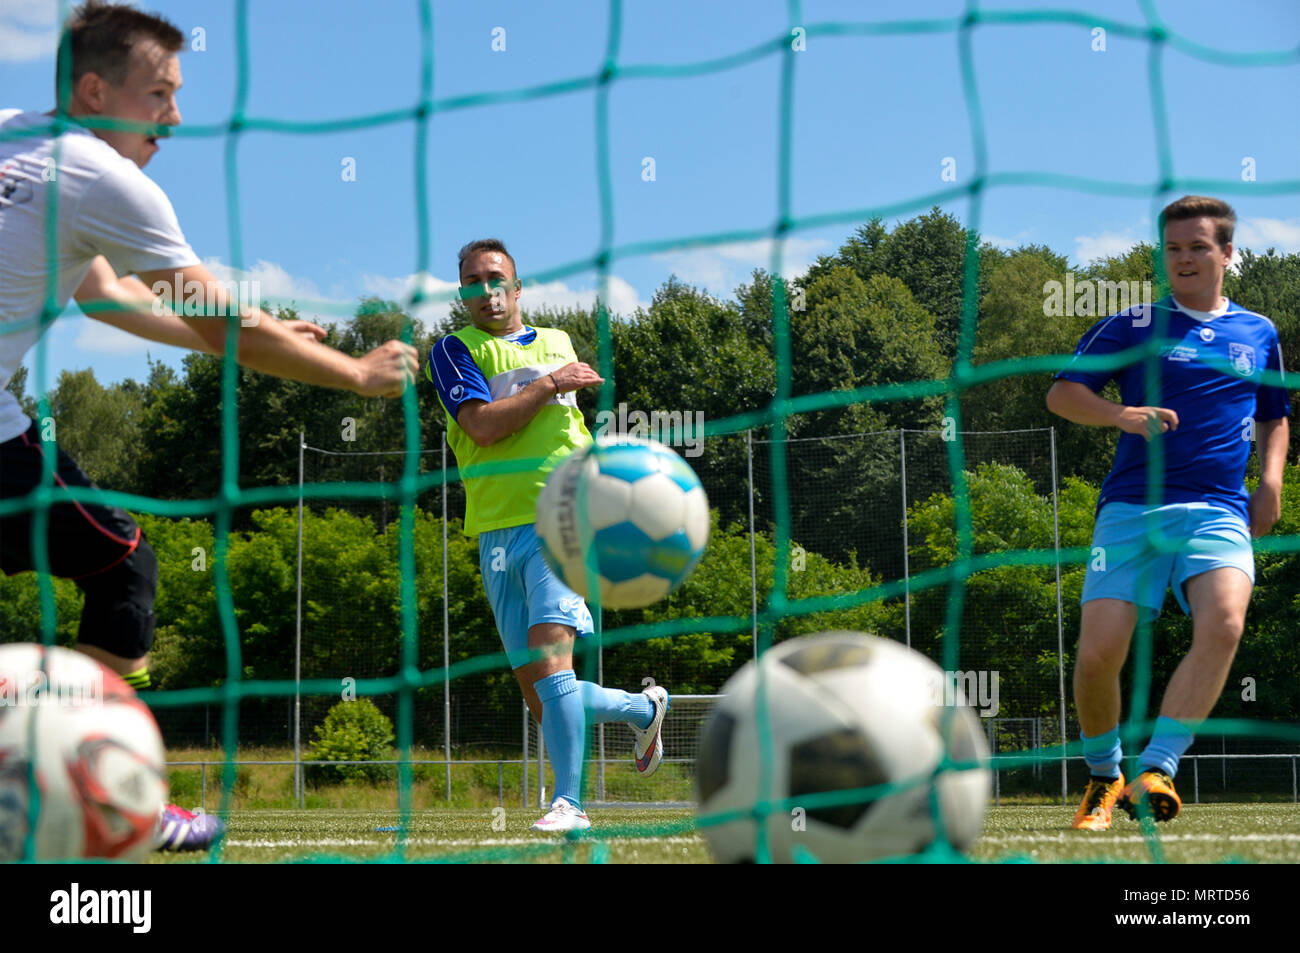 Ramstein Air Base Airmen and Fussballverein Ramstein Fußball Club A-Team play a game of soccer during the Grassroots program sports day, at FV Olympia Field in Ramstein Misenbach, Germany, June 24, 2017. The Grassroots program aims to involve Airmen socially in the local community, forge friendships and raise awareness of German culture and general understanding. (U.S. Air Force photo by Staff Sgt. Nesha Humes) - Stock Image